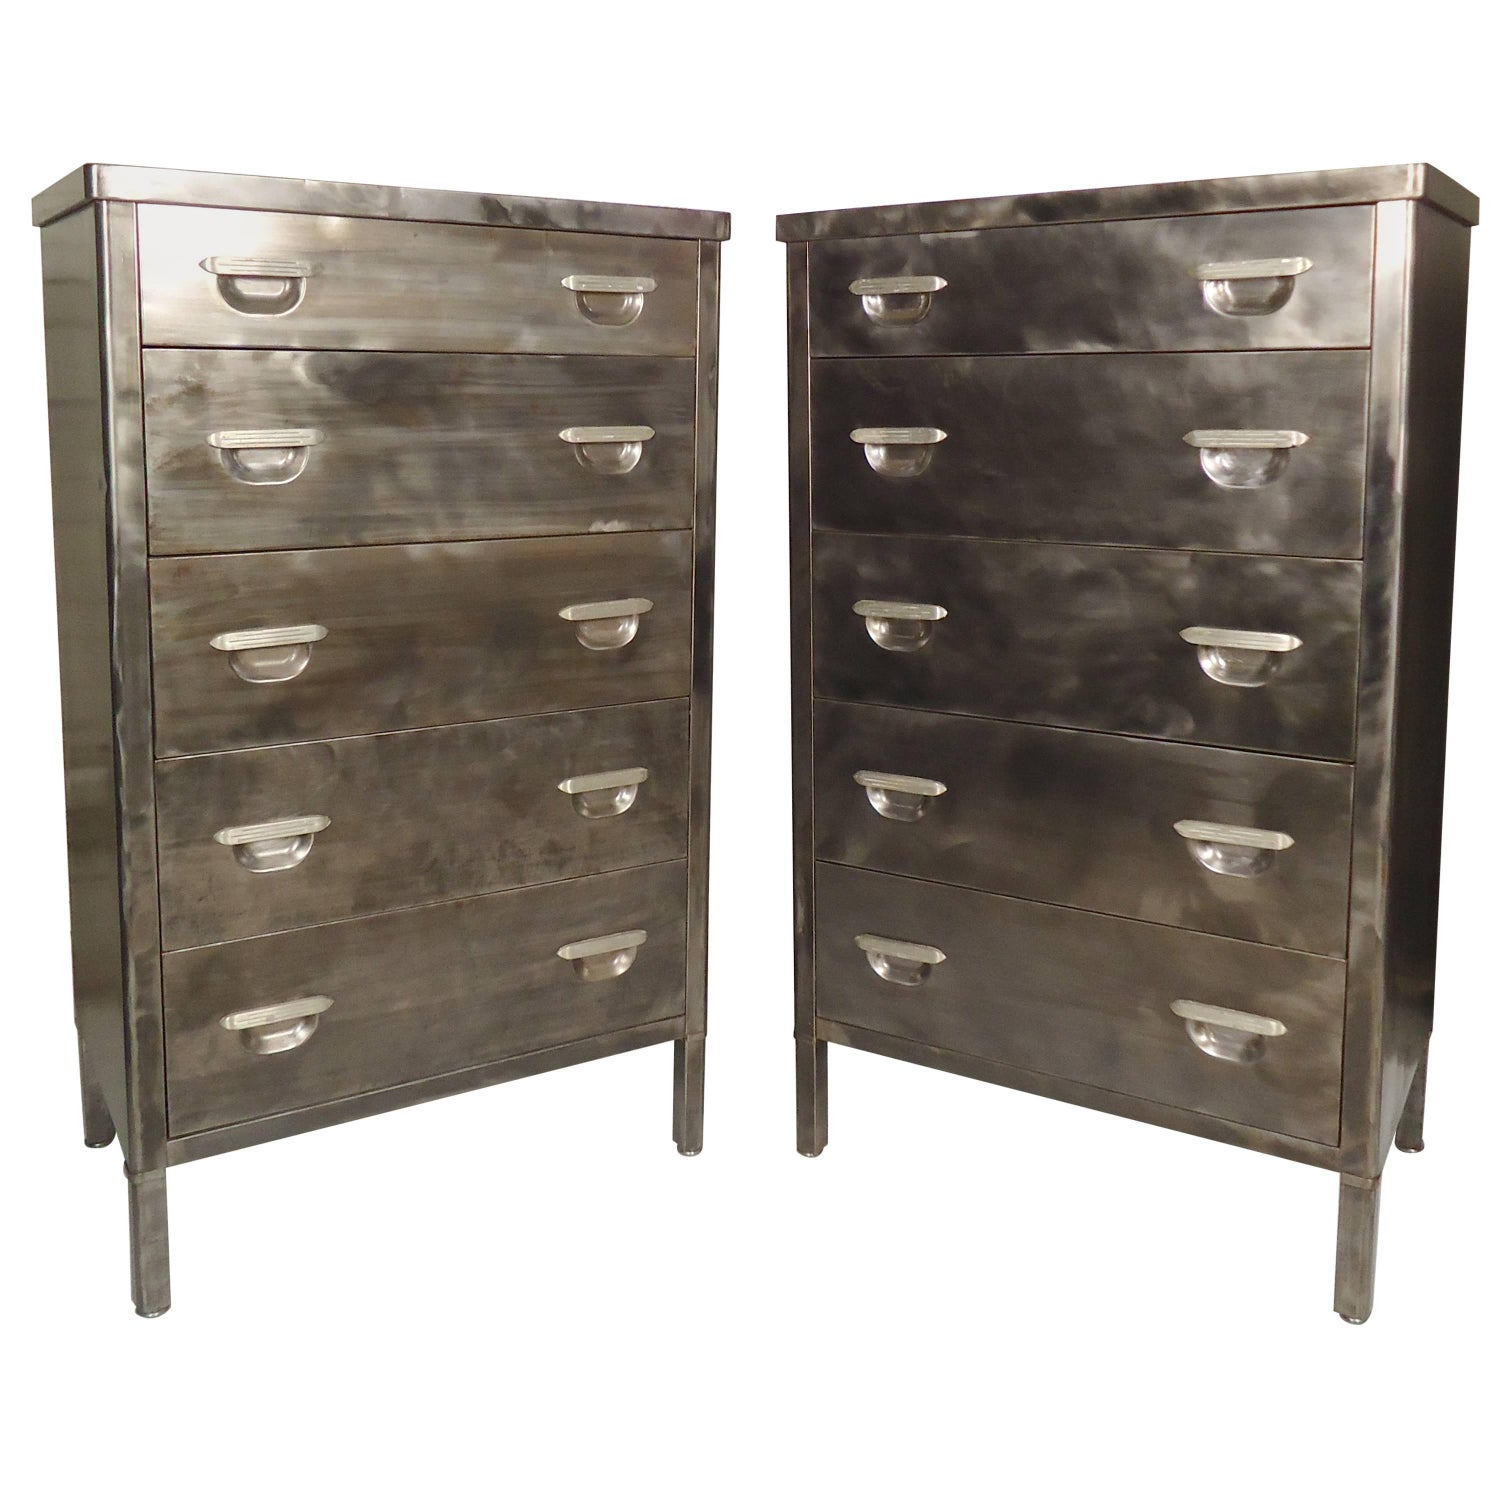 vtg 1940 50s simmons furniture metal medical. Pair Of Tall Metal Dressers Restored Vtg 1940 50s Simmons Furniture Medical T